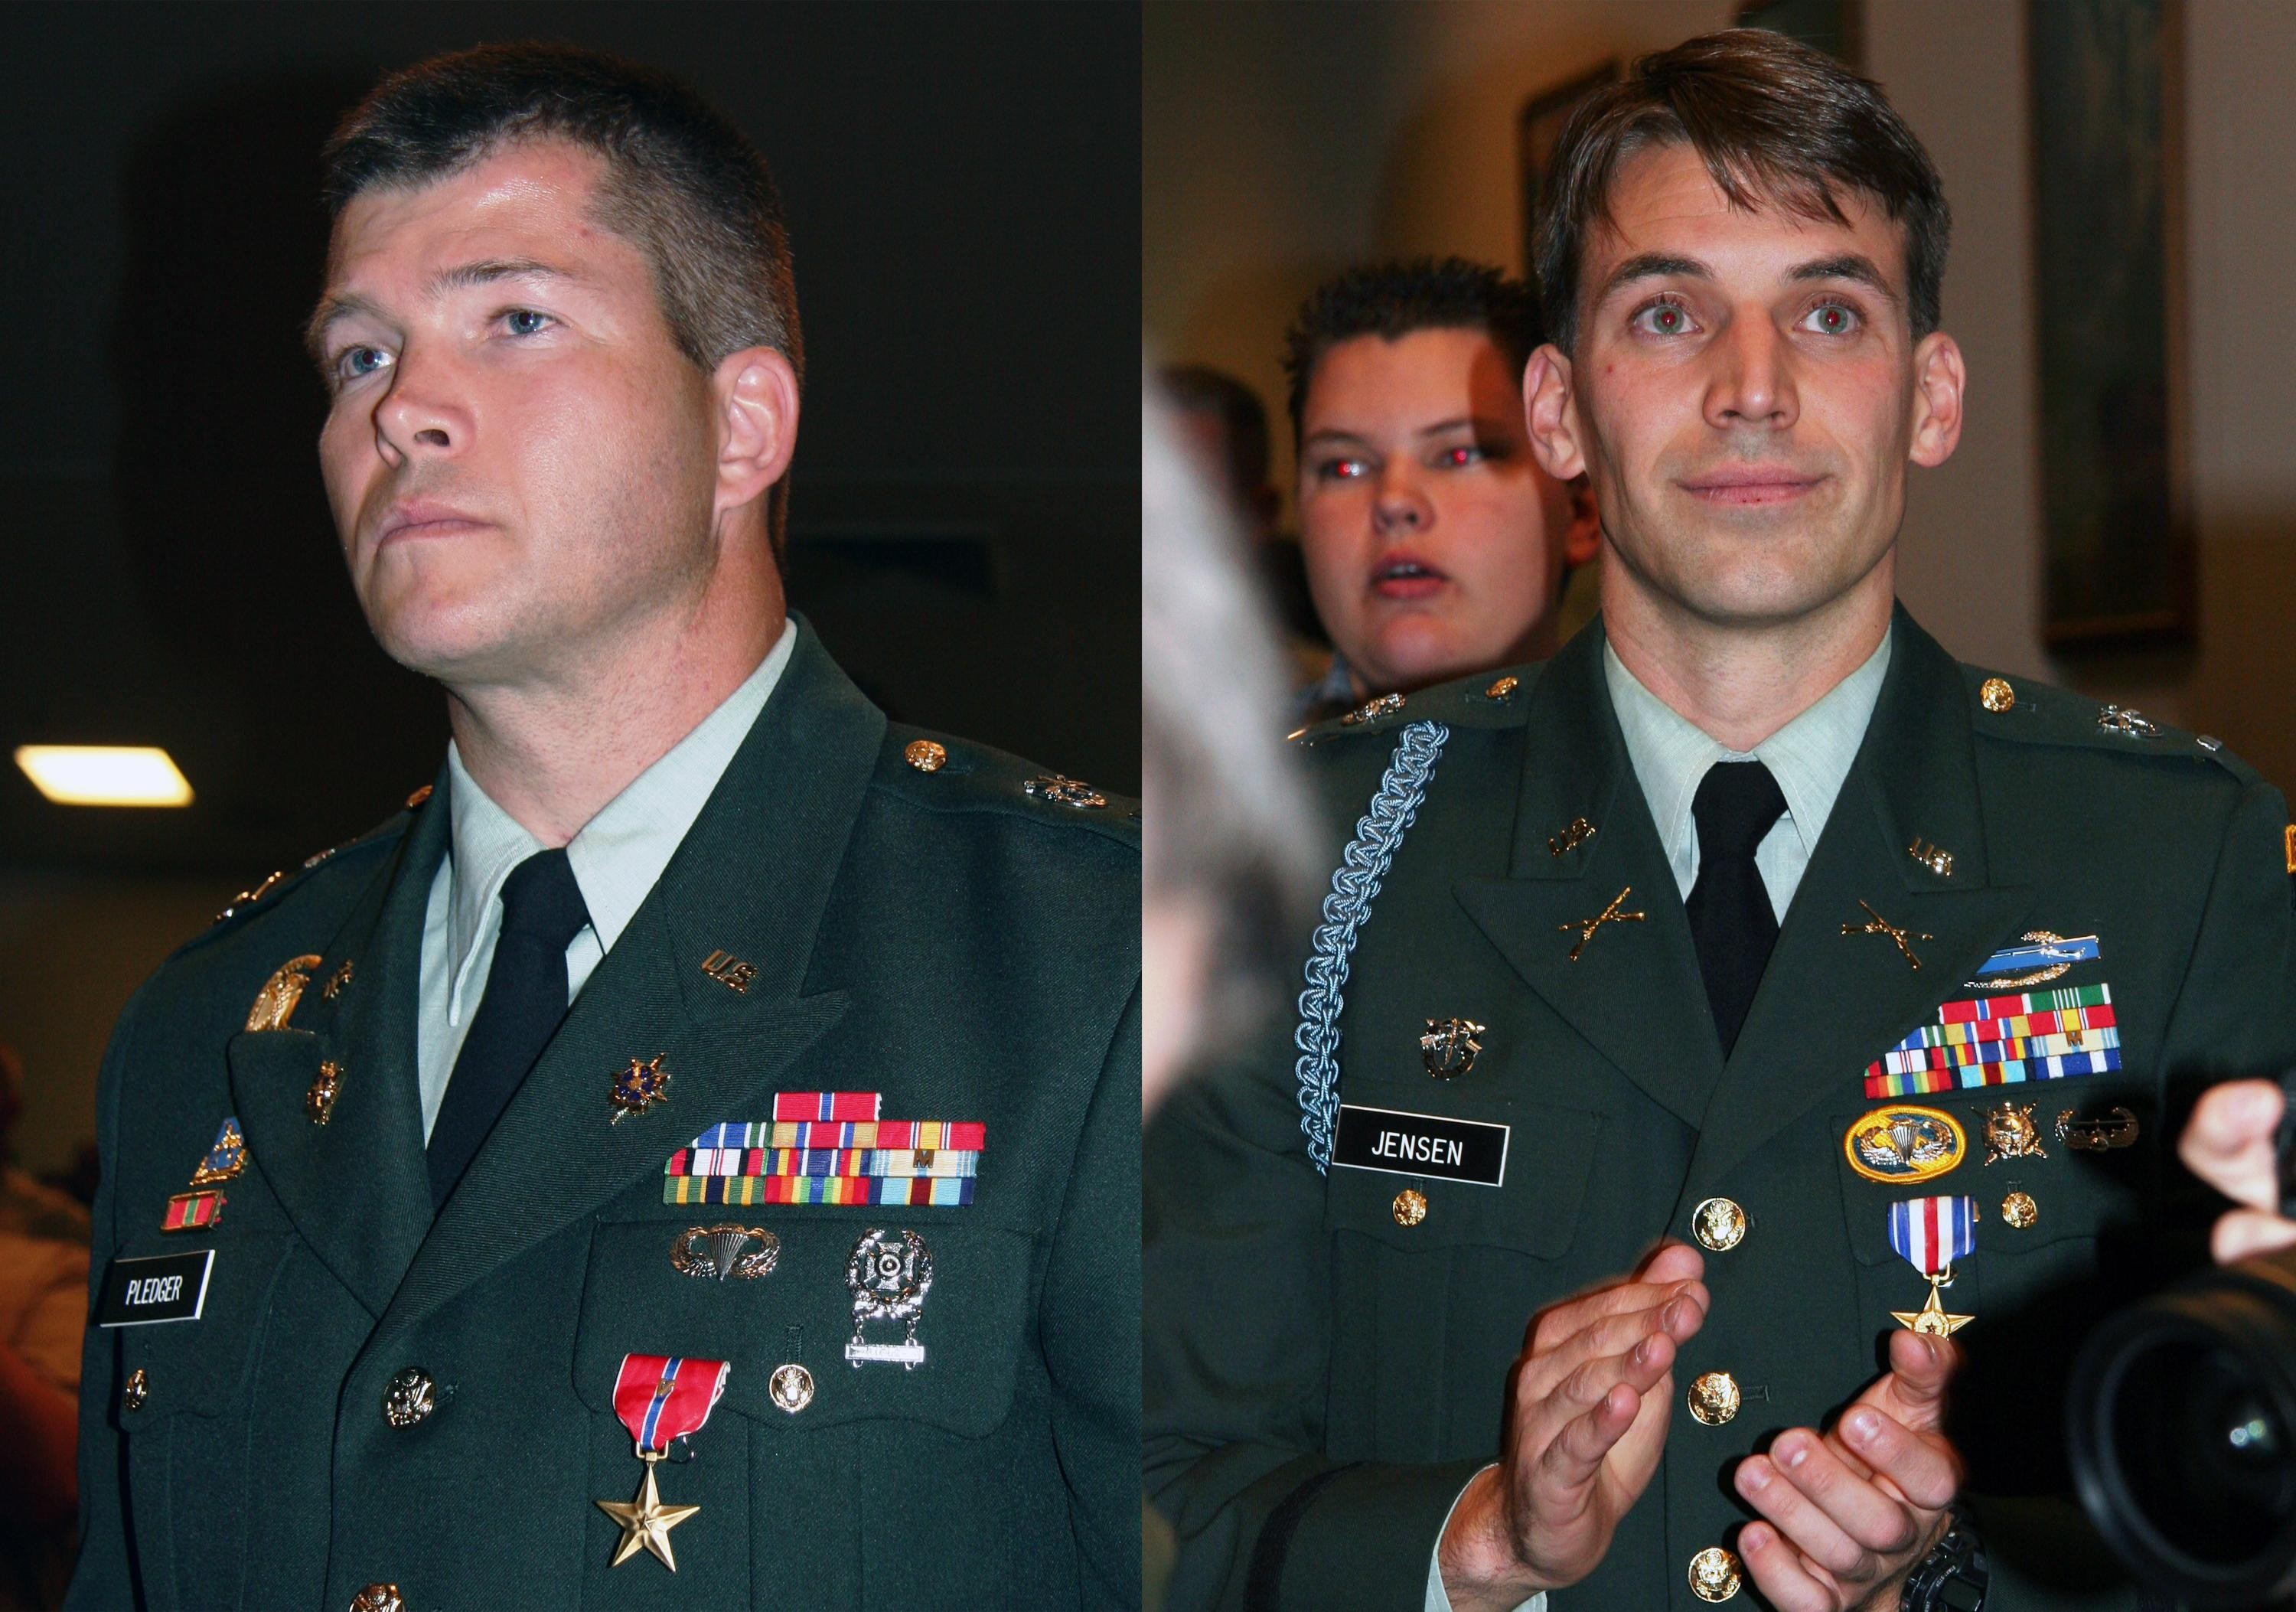 Utah Guard Soldiers Awarded Silver Bronze Stars For Valor